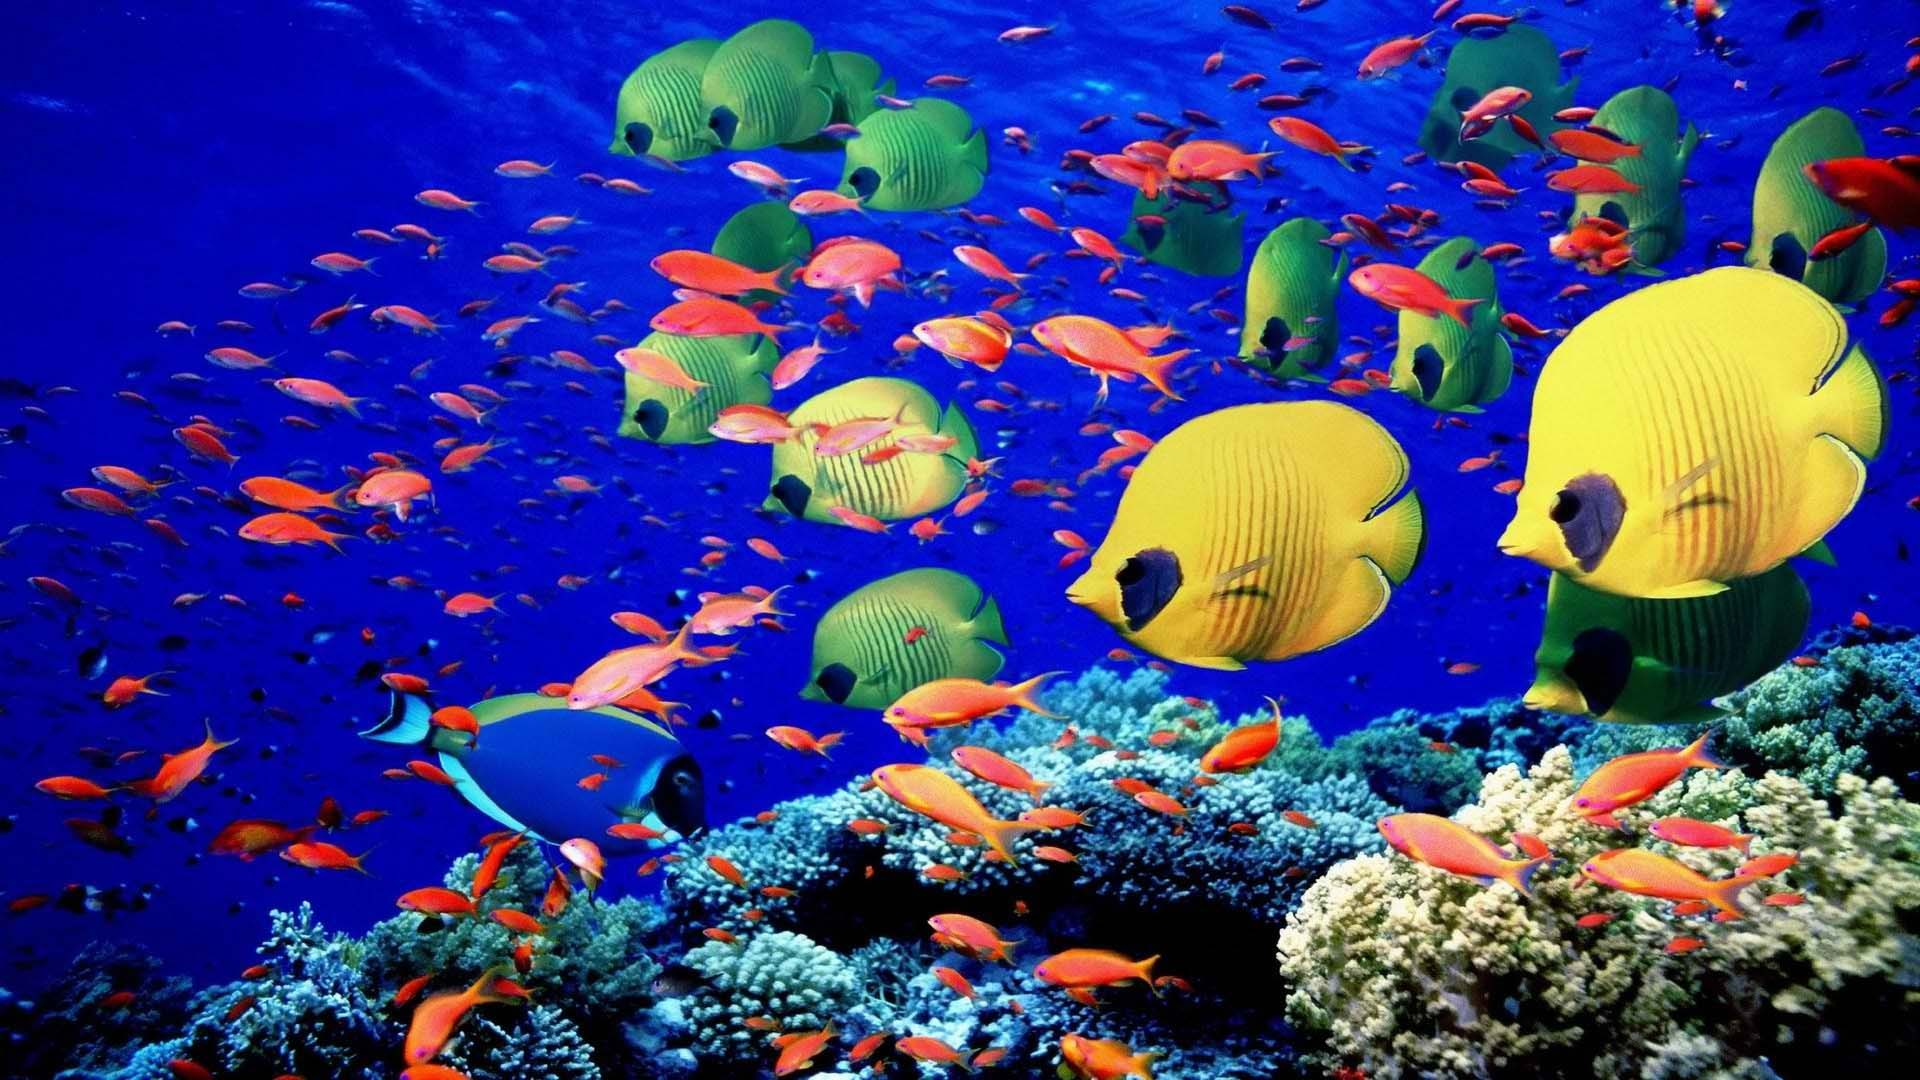 Coral Reef Murals Sea Wallpapers Daily Backgrounds in HD 1920x1080